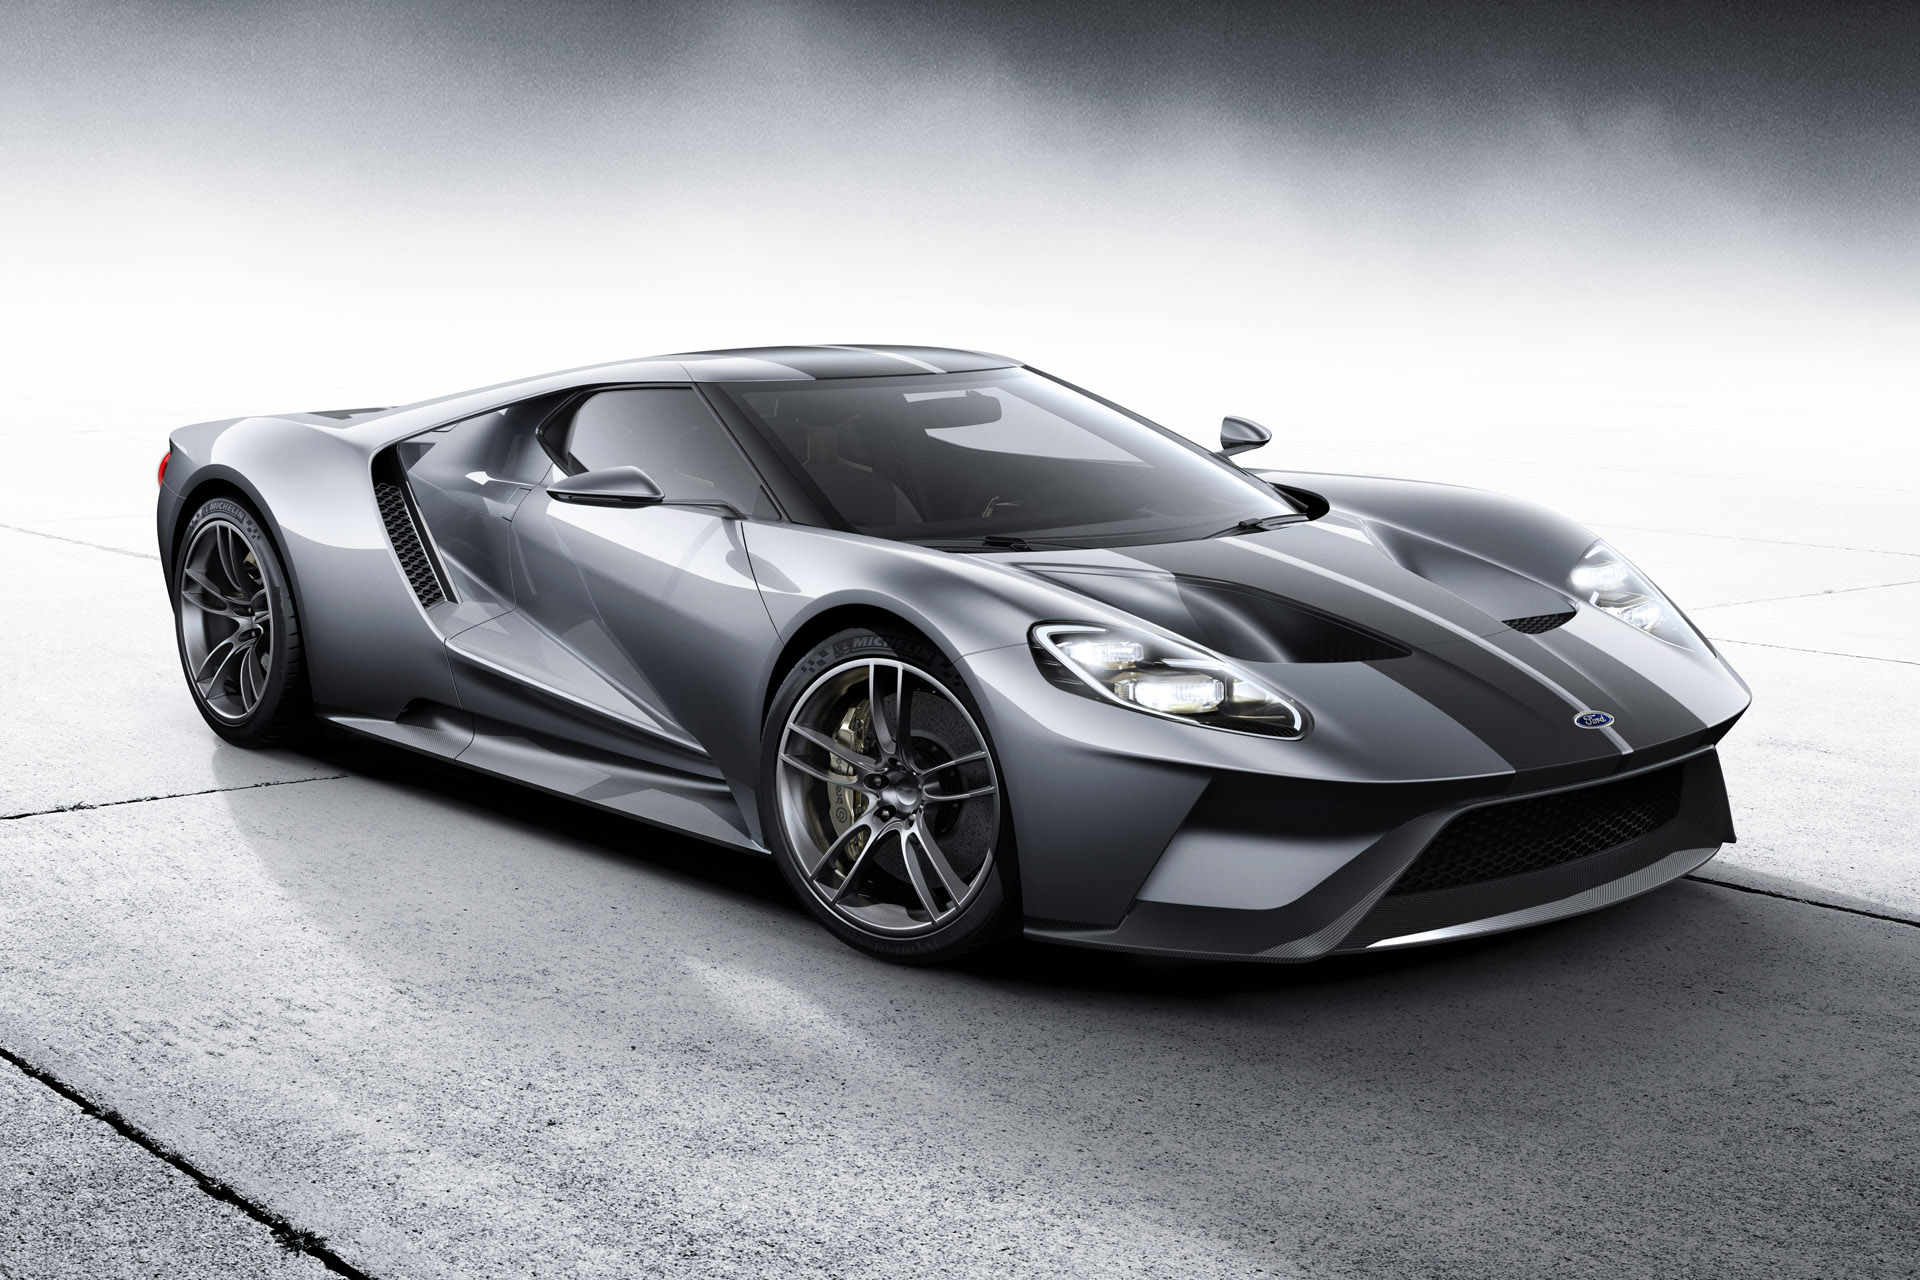 The all-new, carbon-fiber, mid-engined Ford GT supercar, expected to go into production in 2016, will redefine innovation in aerodynamics, EcoBoost and light-weighting. Shown in Liquid Silver with black racing stripes at the 2015 Chicago Auto Show.